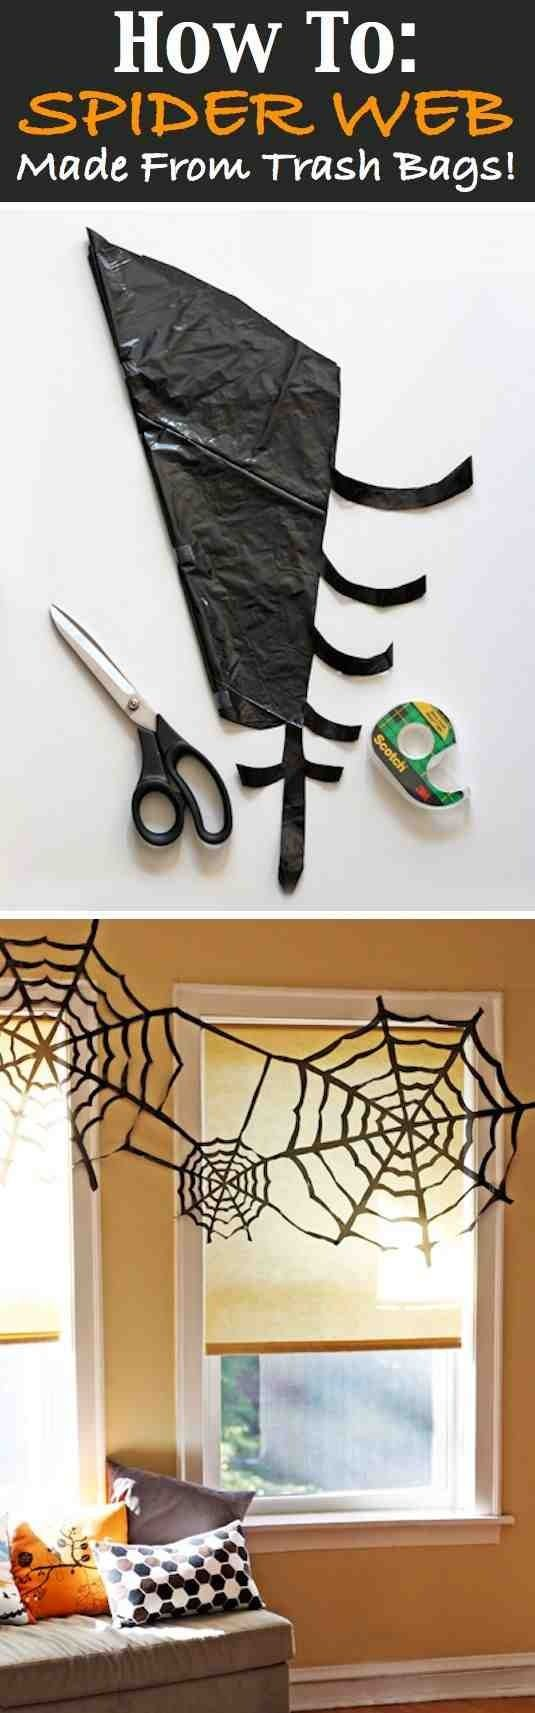 Spider webs from trash bags. Halloween decor! I did this last year and it was cheap and pretty easy